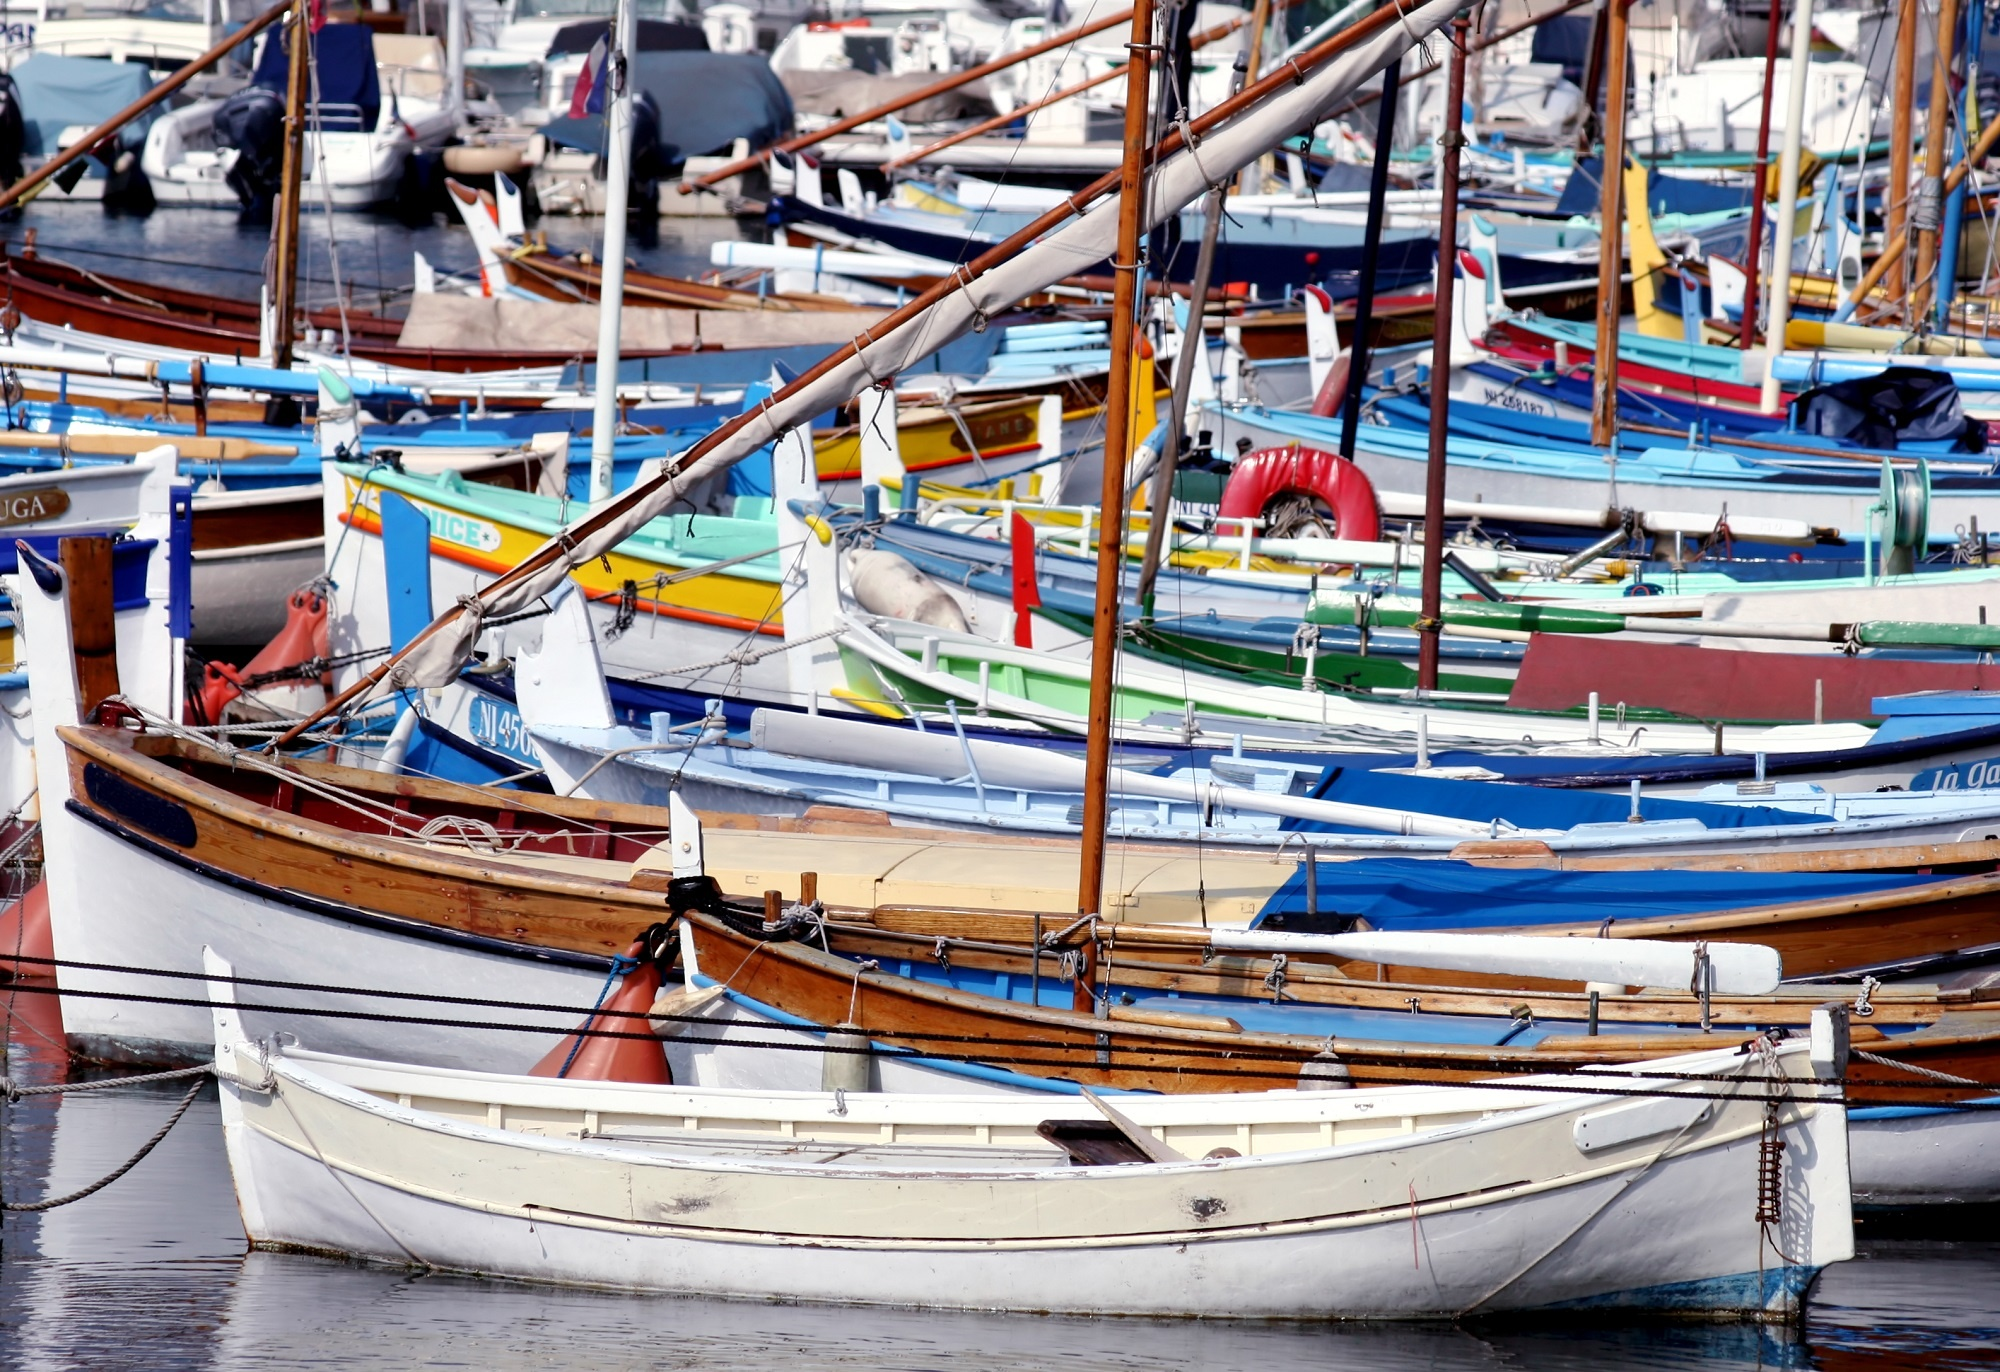 Boats on the Port, Boat, Port, Ship, Stand, HQ Photo